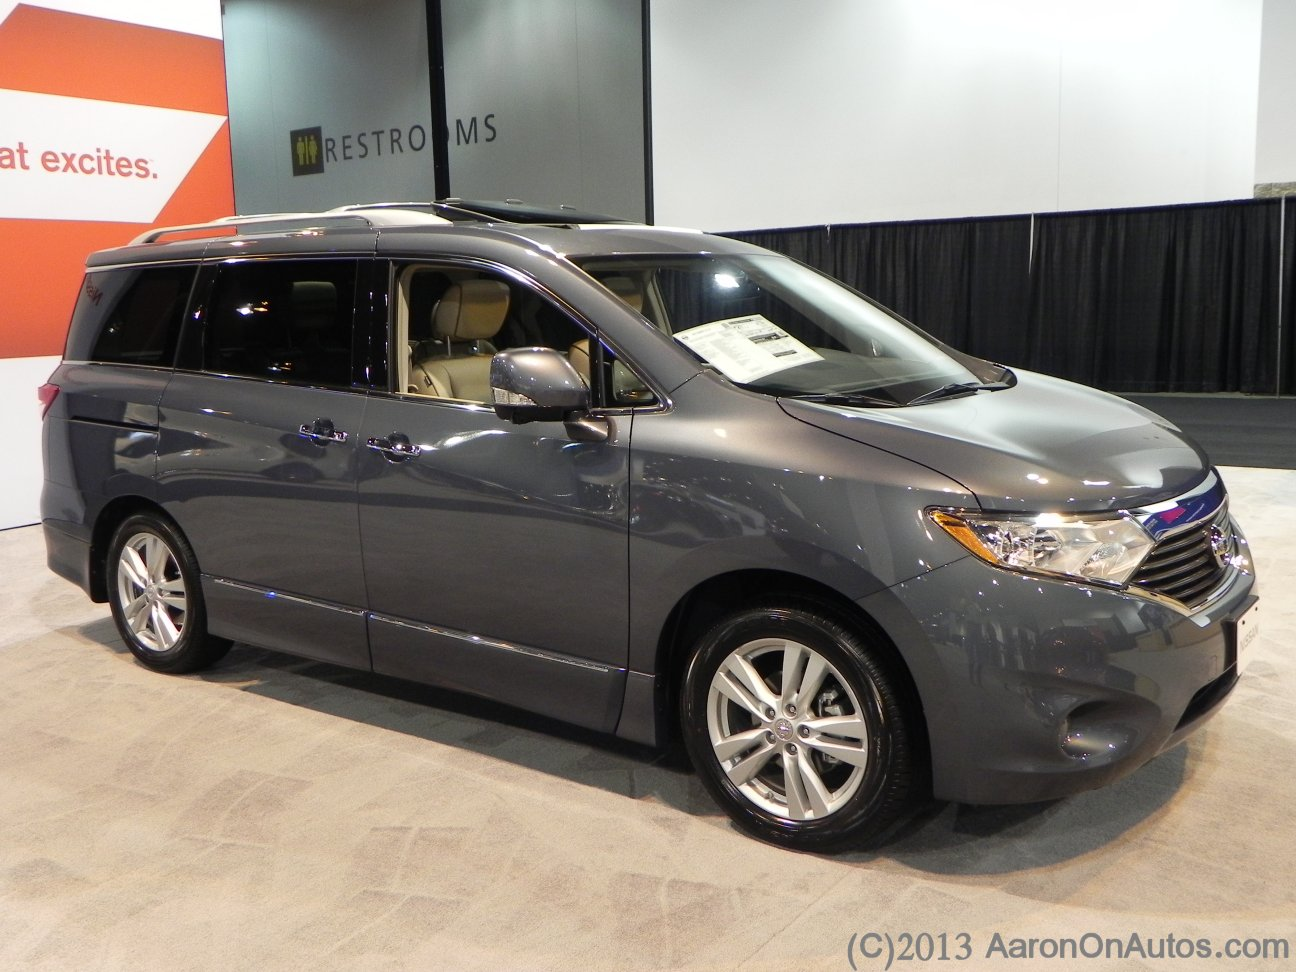 2013NissanQuest-rightside-AOA